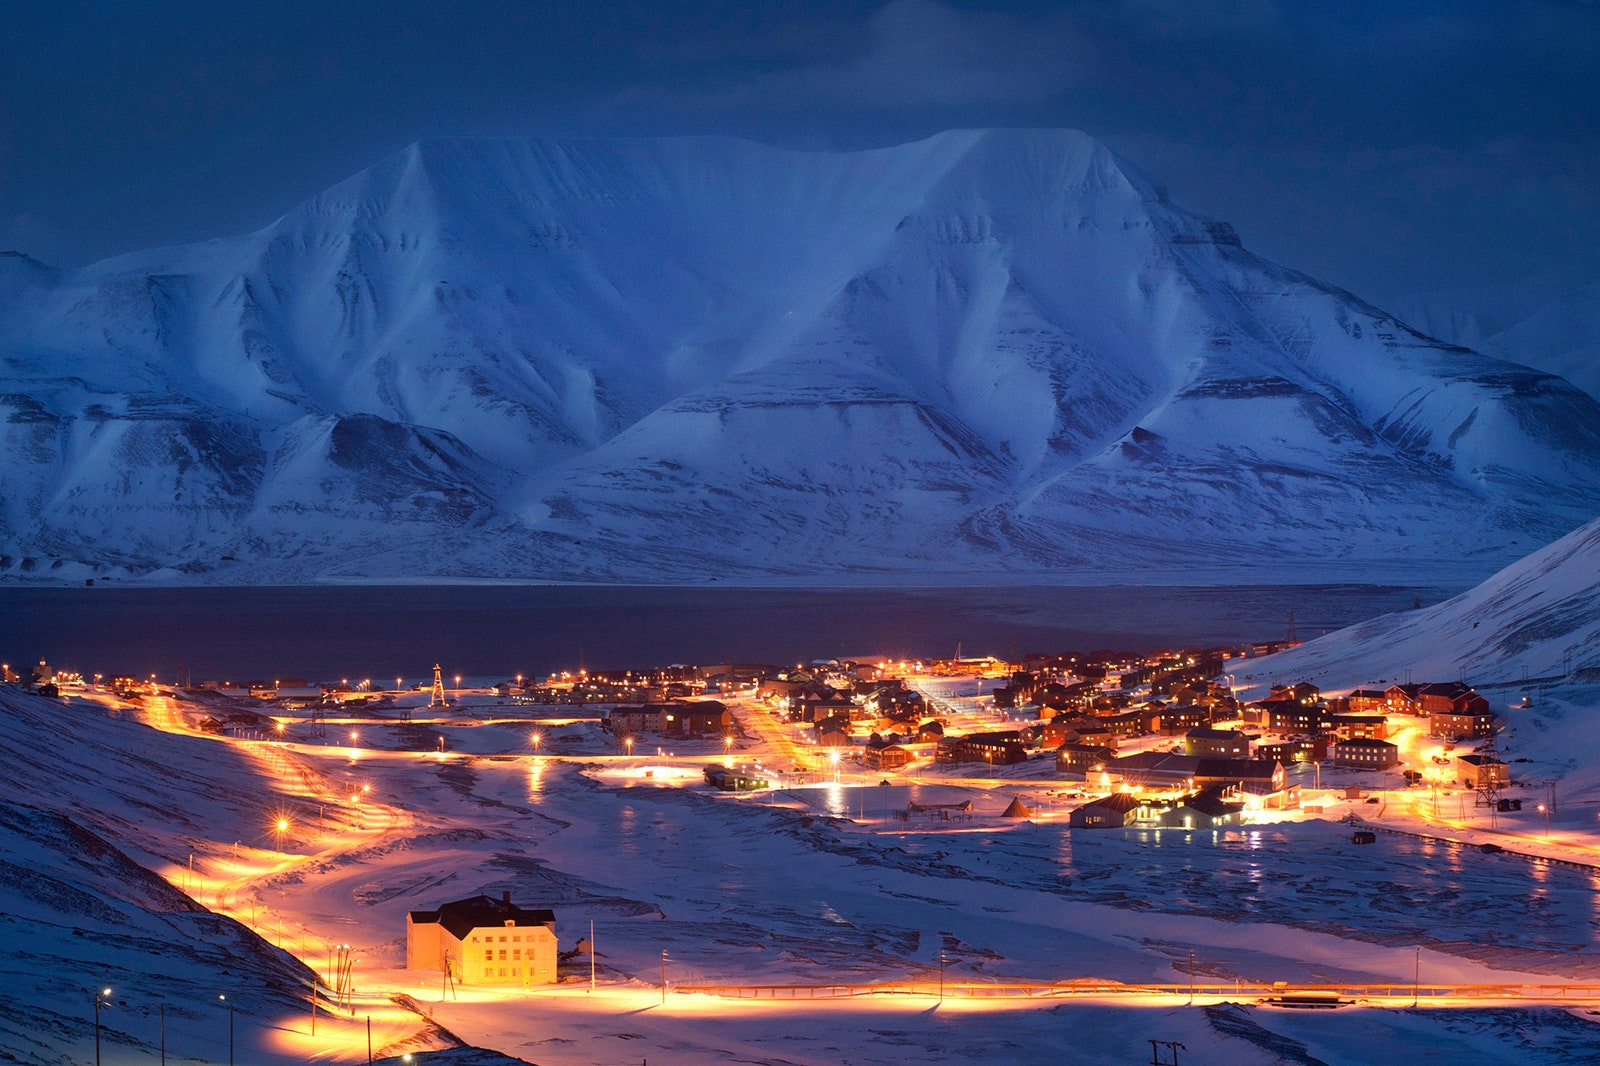 02-travel-guide-to-svalbard-islands-norway-north-pole.jpg